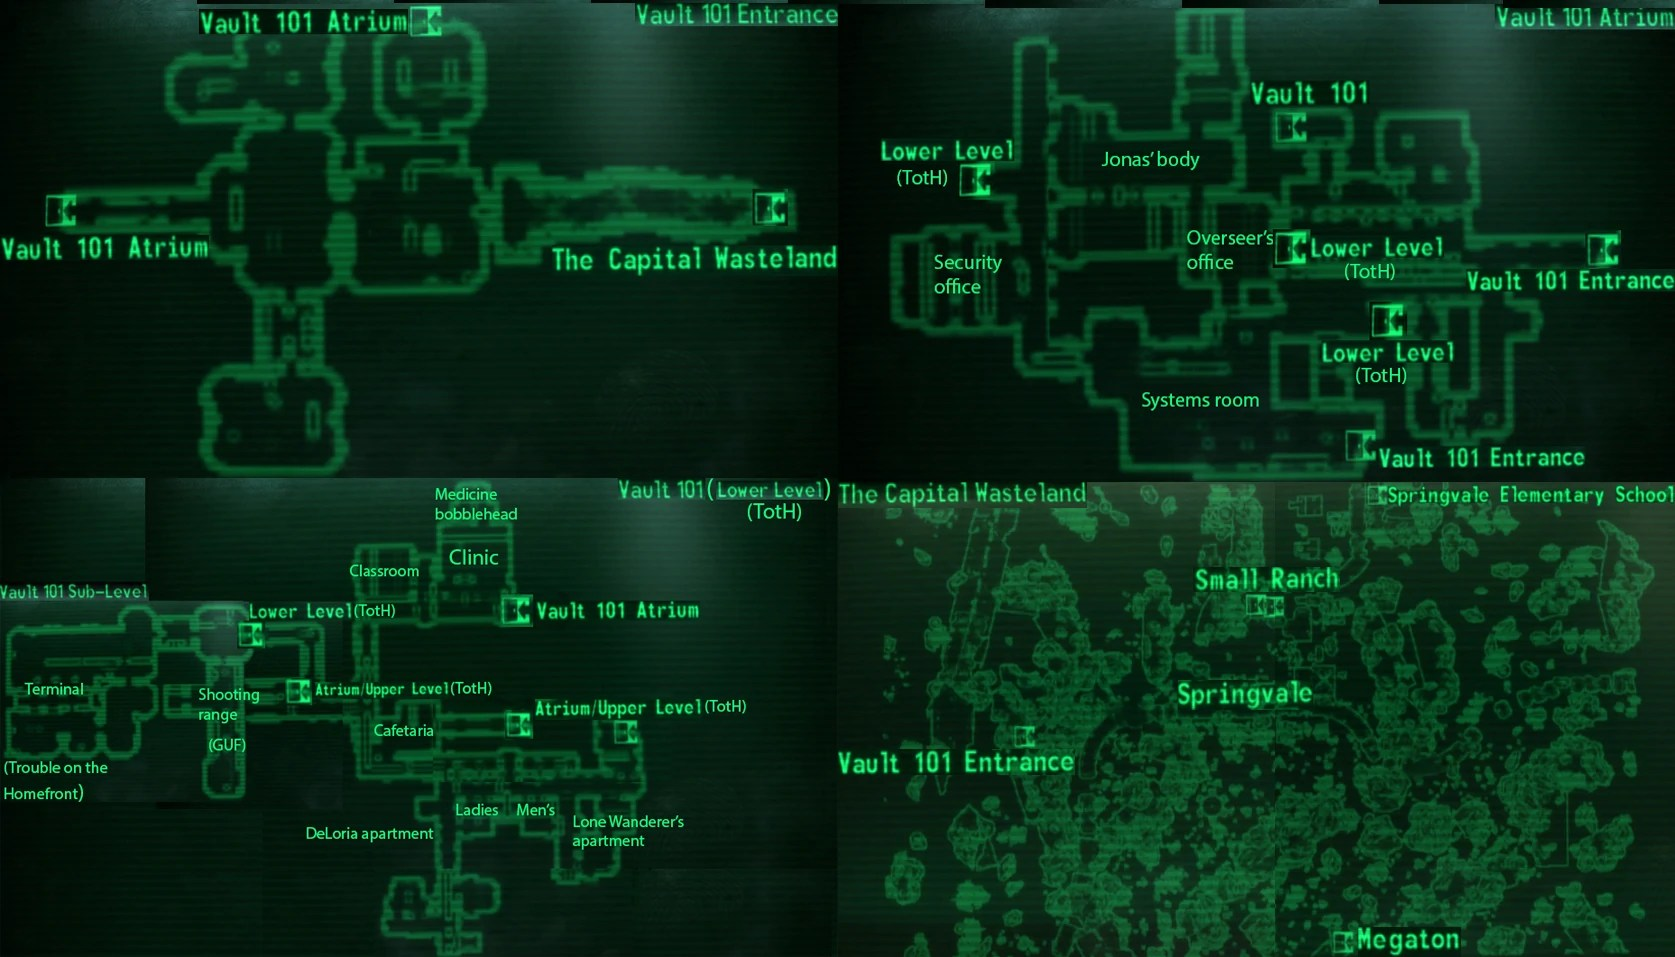 Image   Vault 101 local map jpg   Fallout Wiki   FANDOM powered by Wikia Vault 101 local map jpg